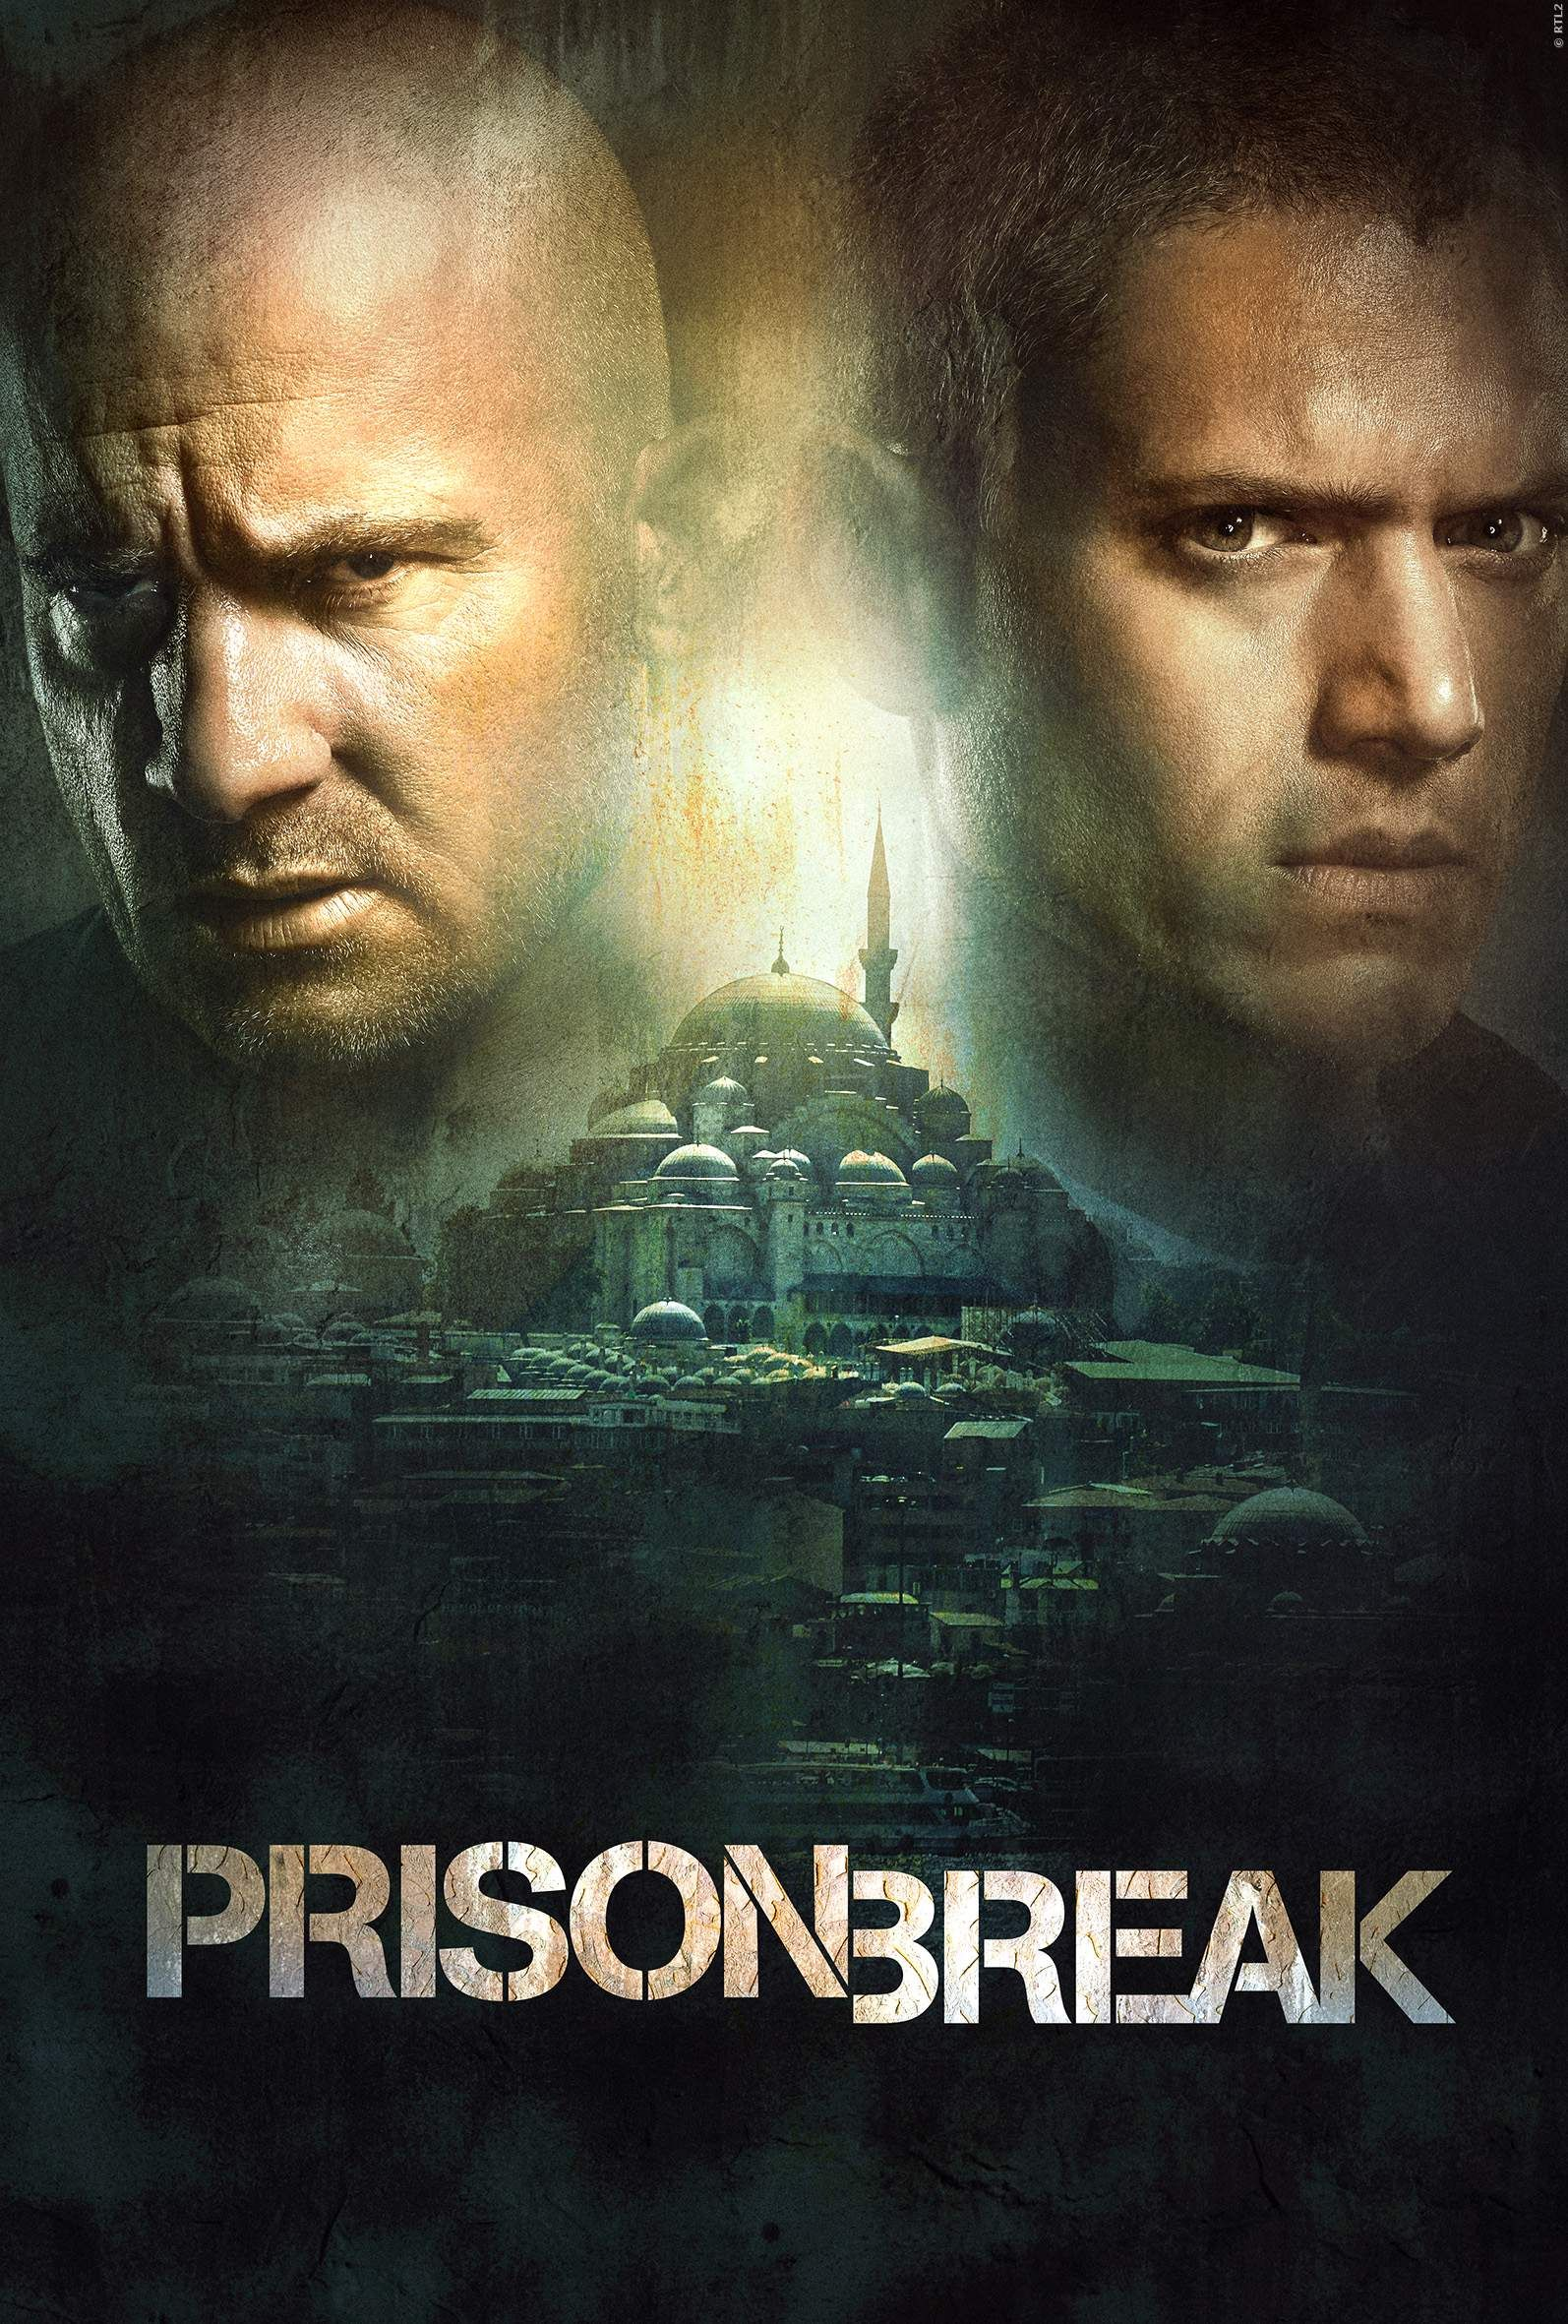 1 temporada prison break dublado rmvb